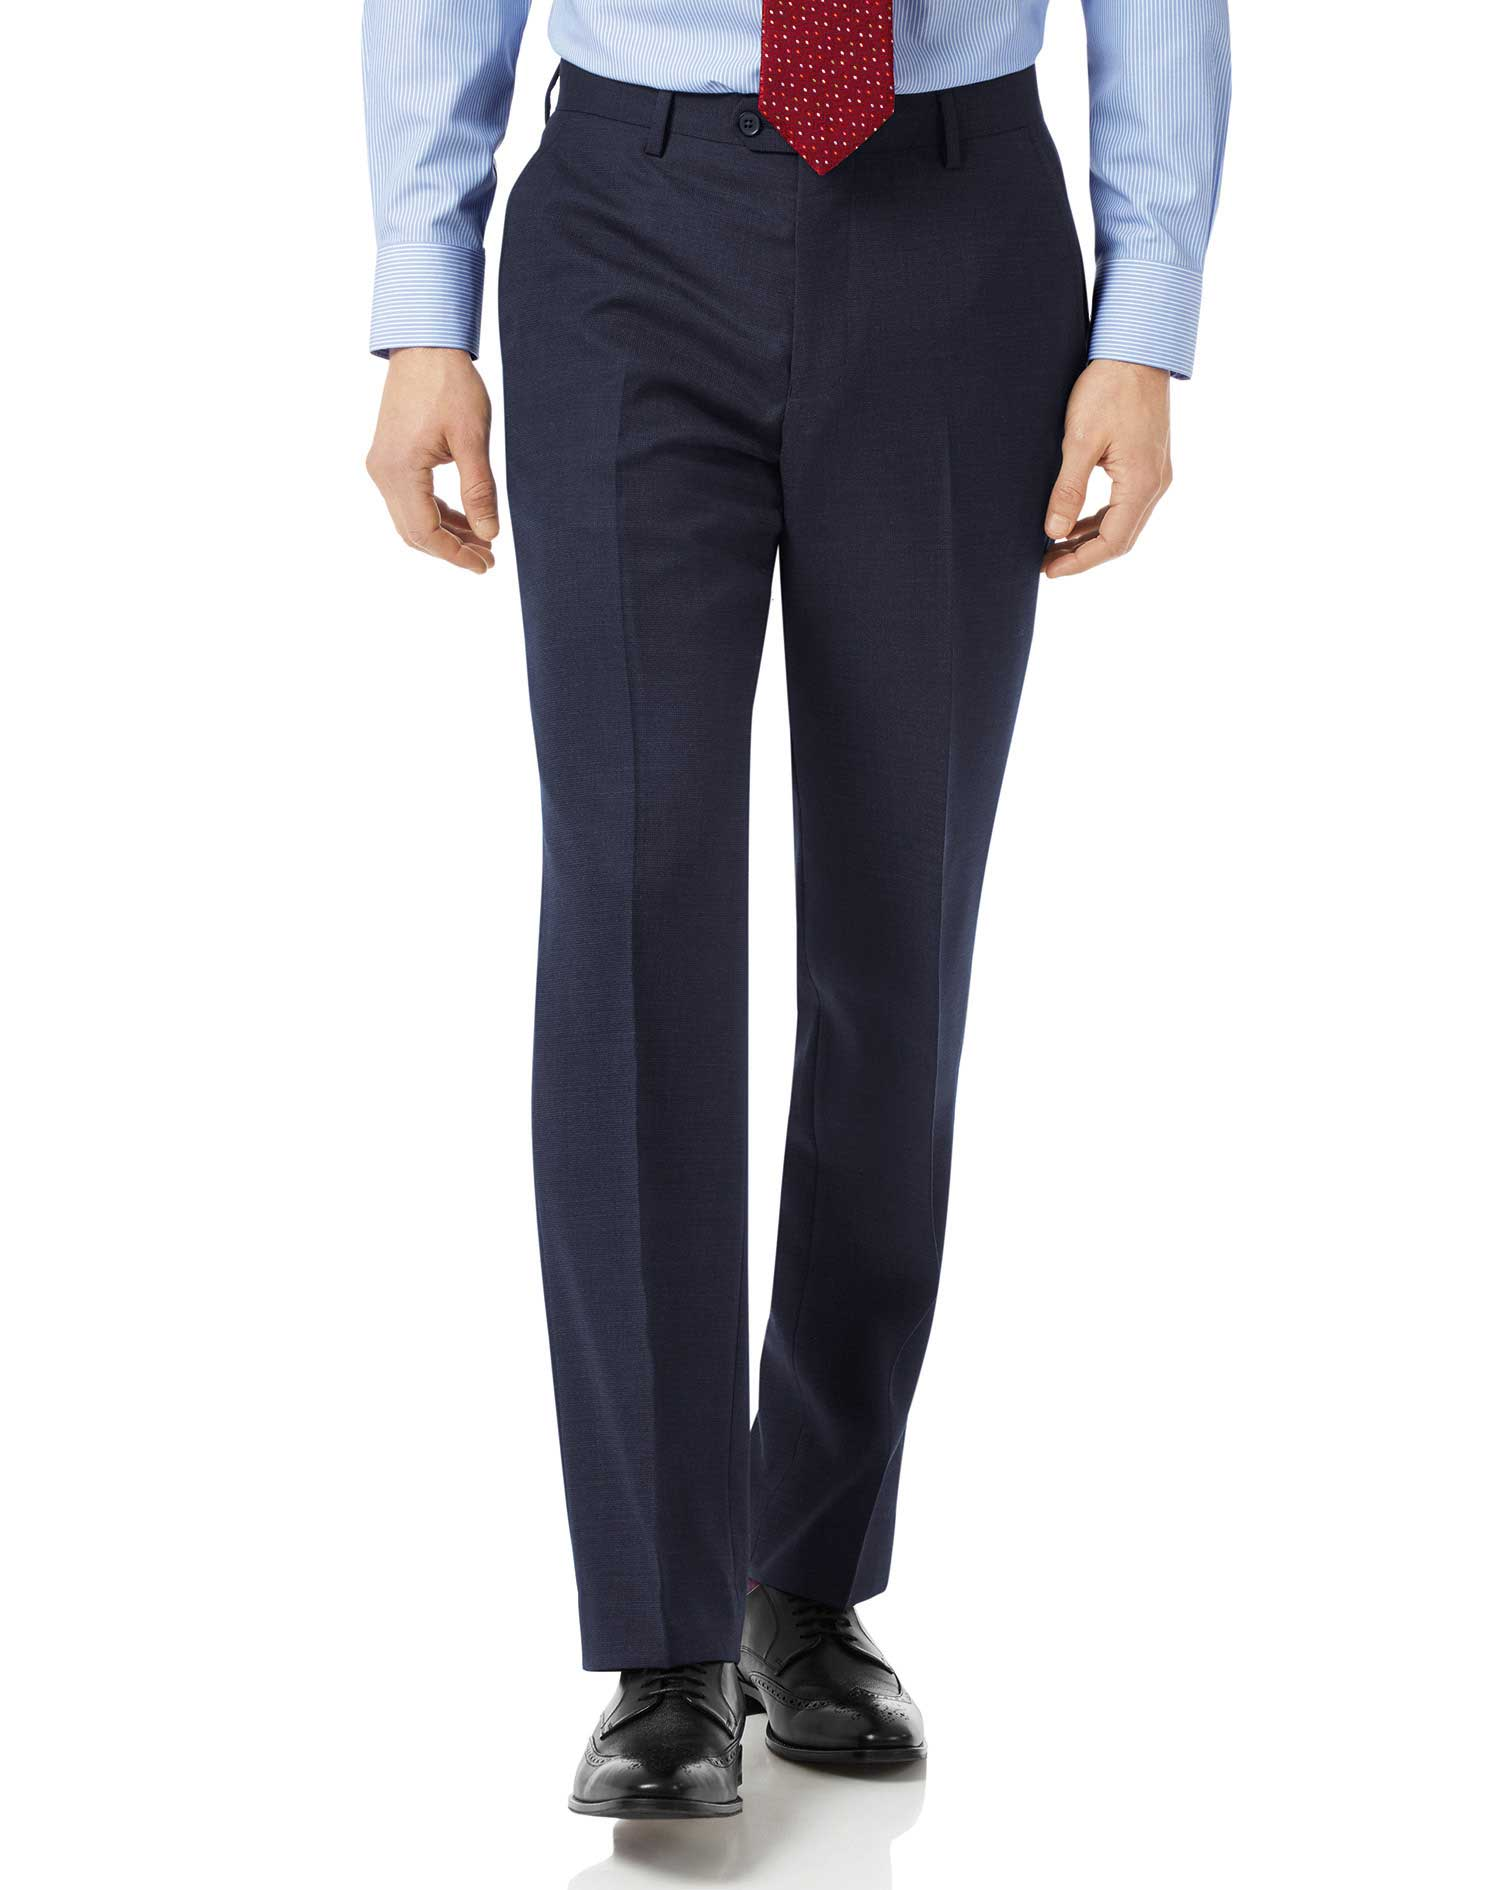 Navy Classic Fit Jaspe Business Suit Trousers Size W32 L34 by Charles Tyrwhitt